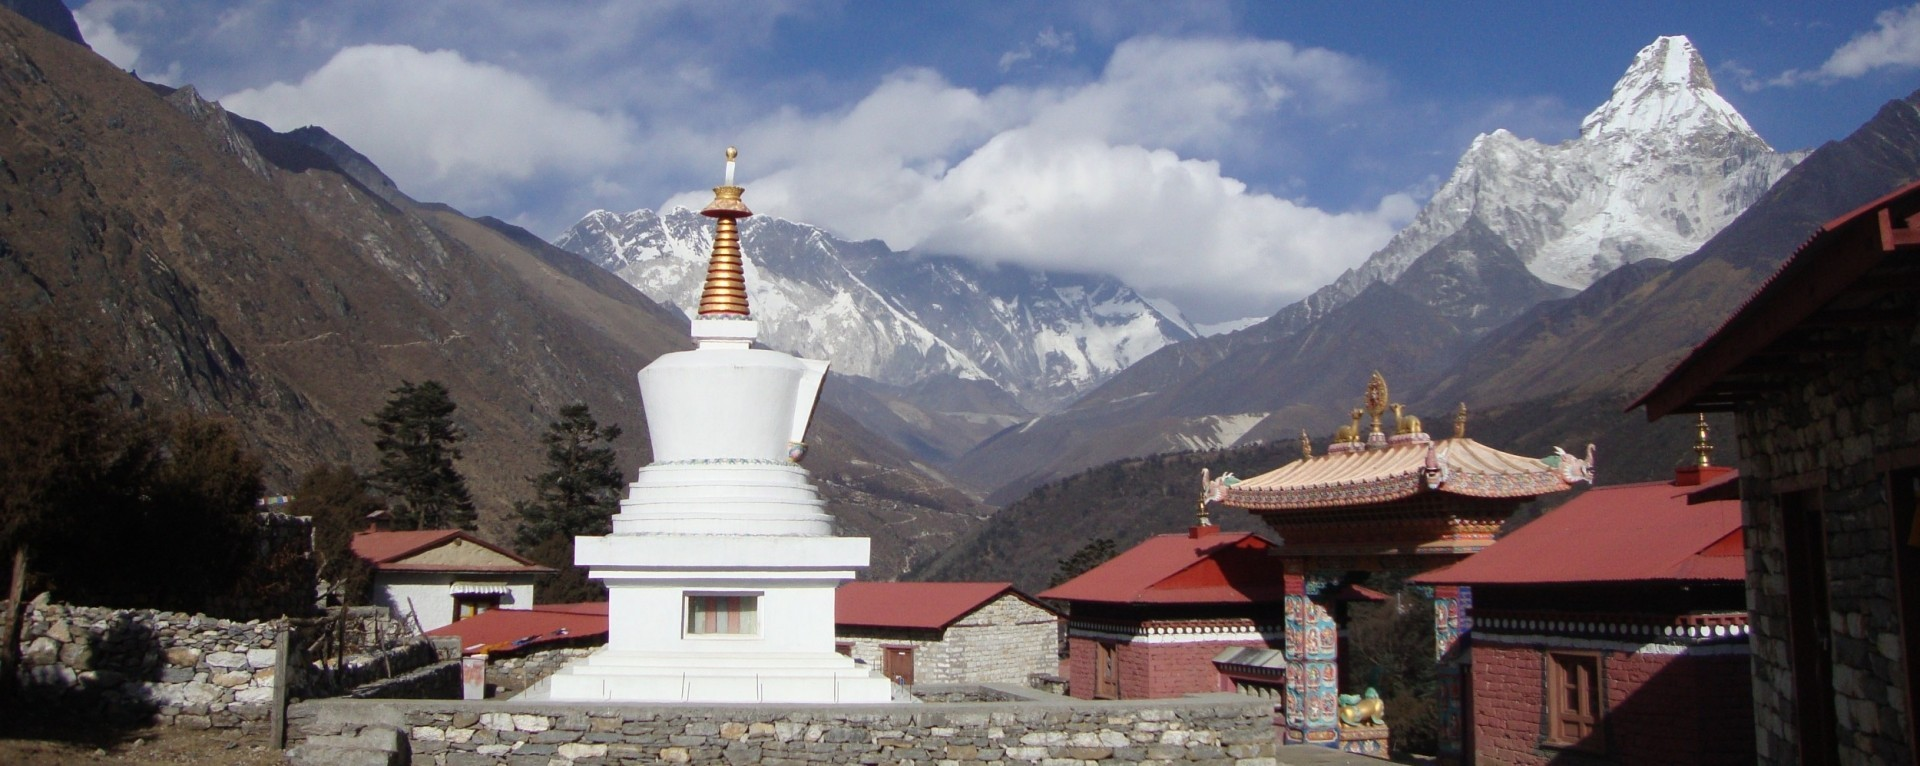 Great mountain views from Tengboche Monastery on the way to Basecamp of Everest.